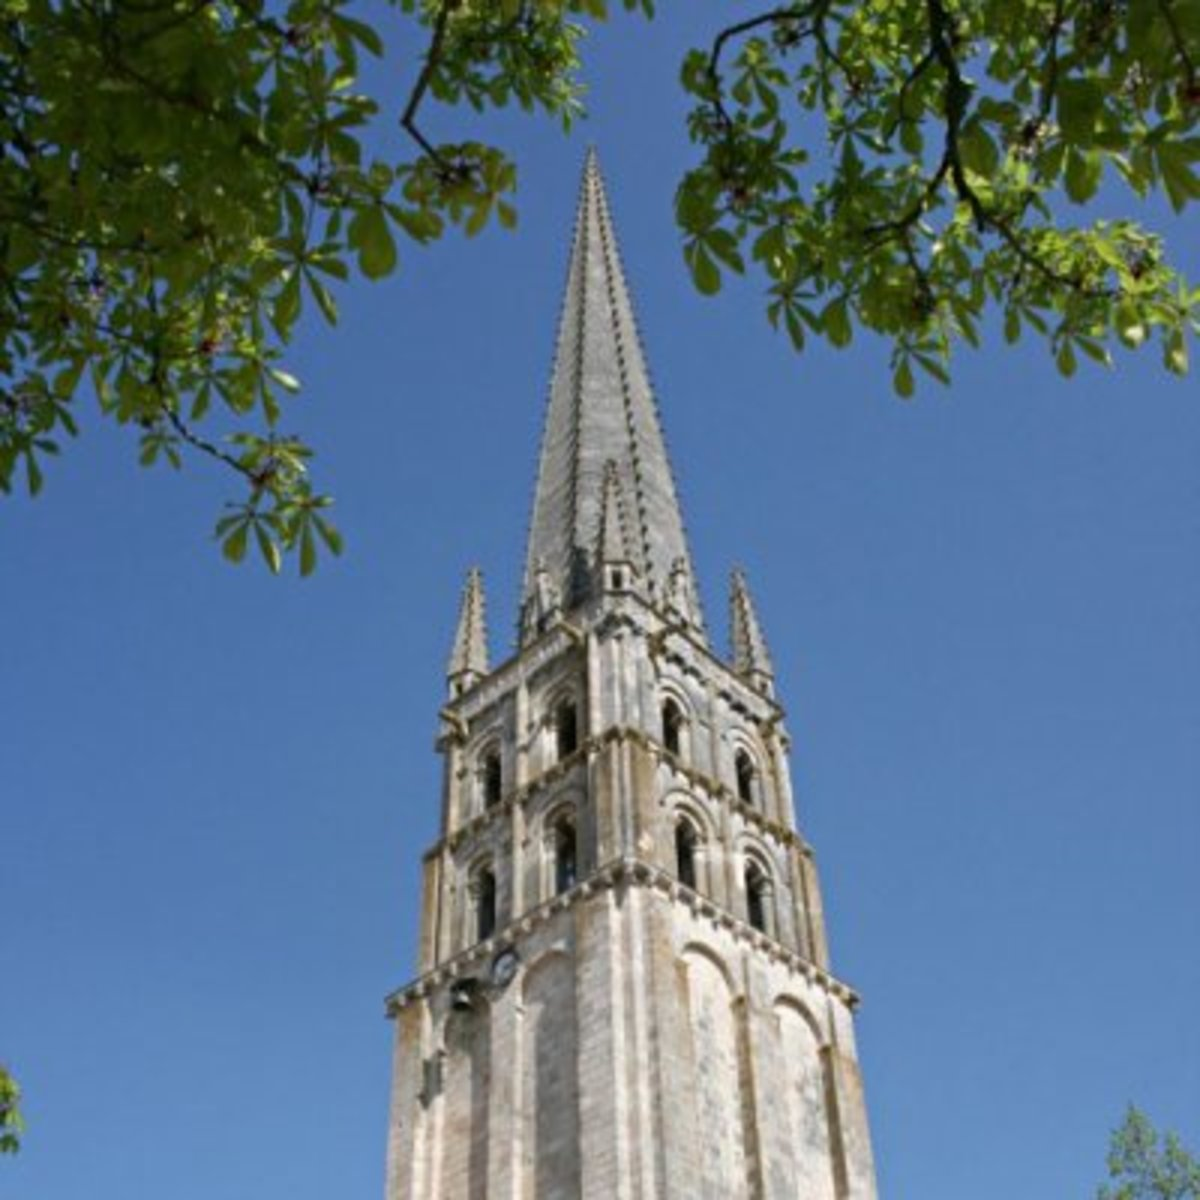 The spire of the Abbey Church of St Savin